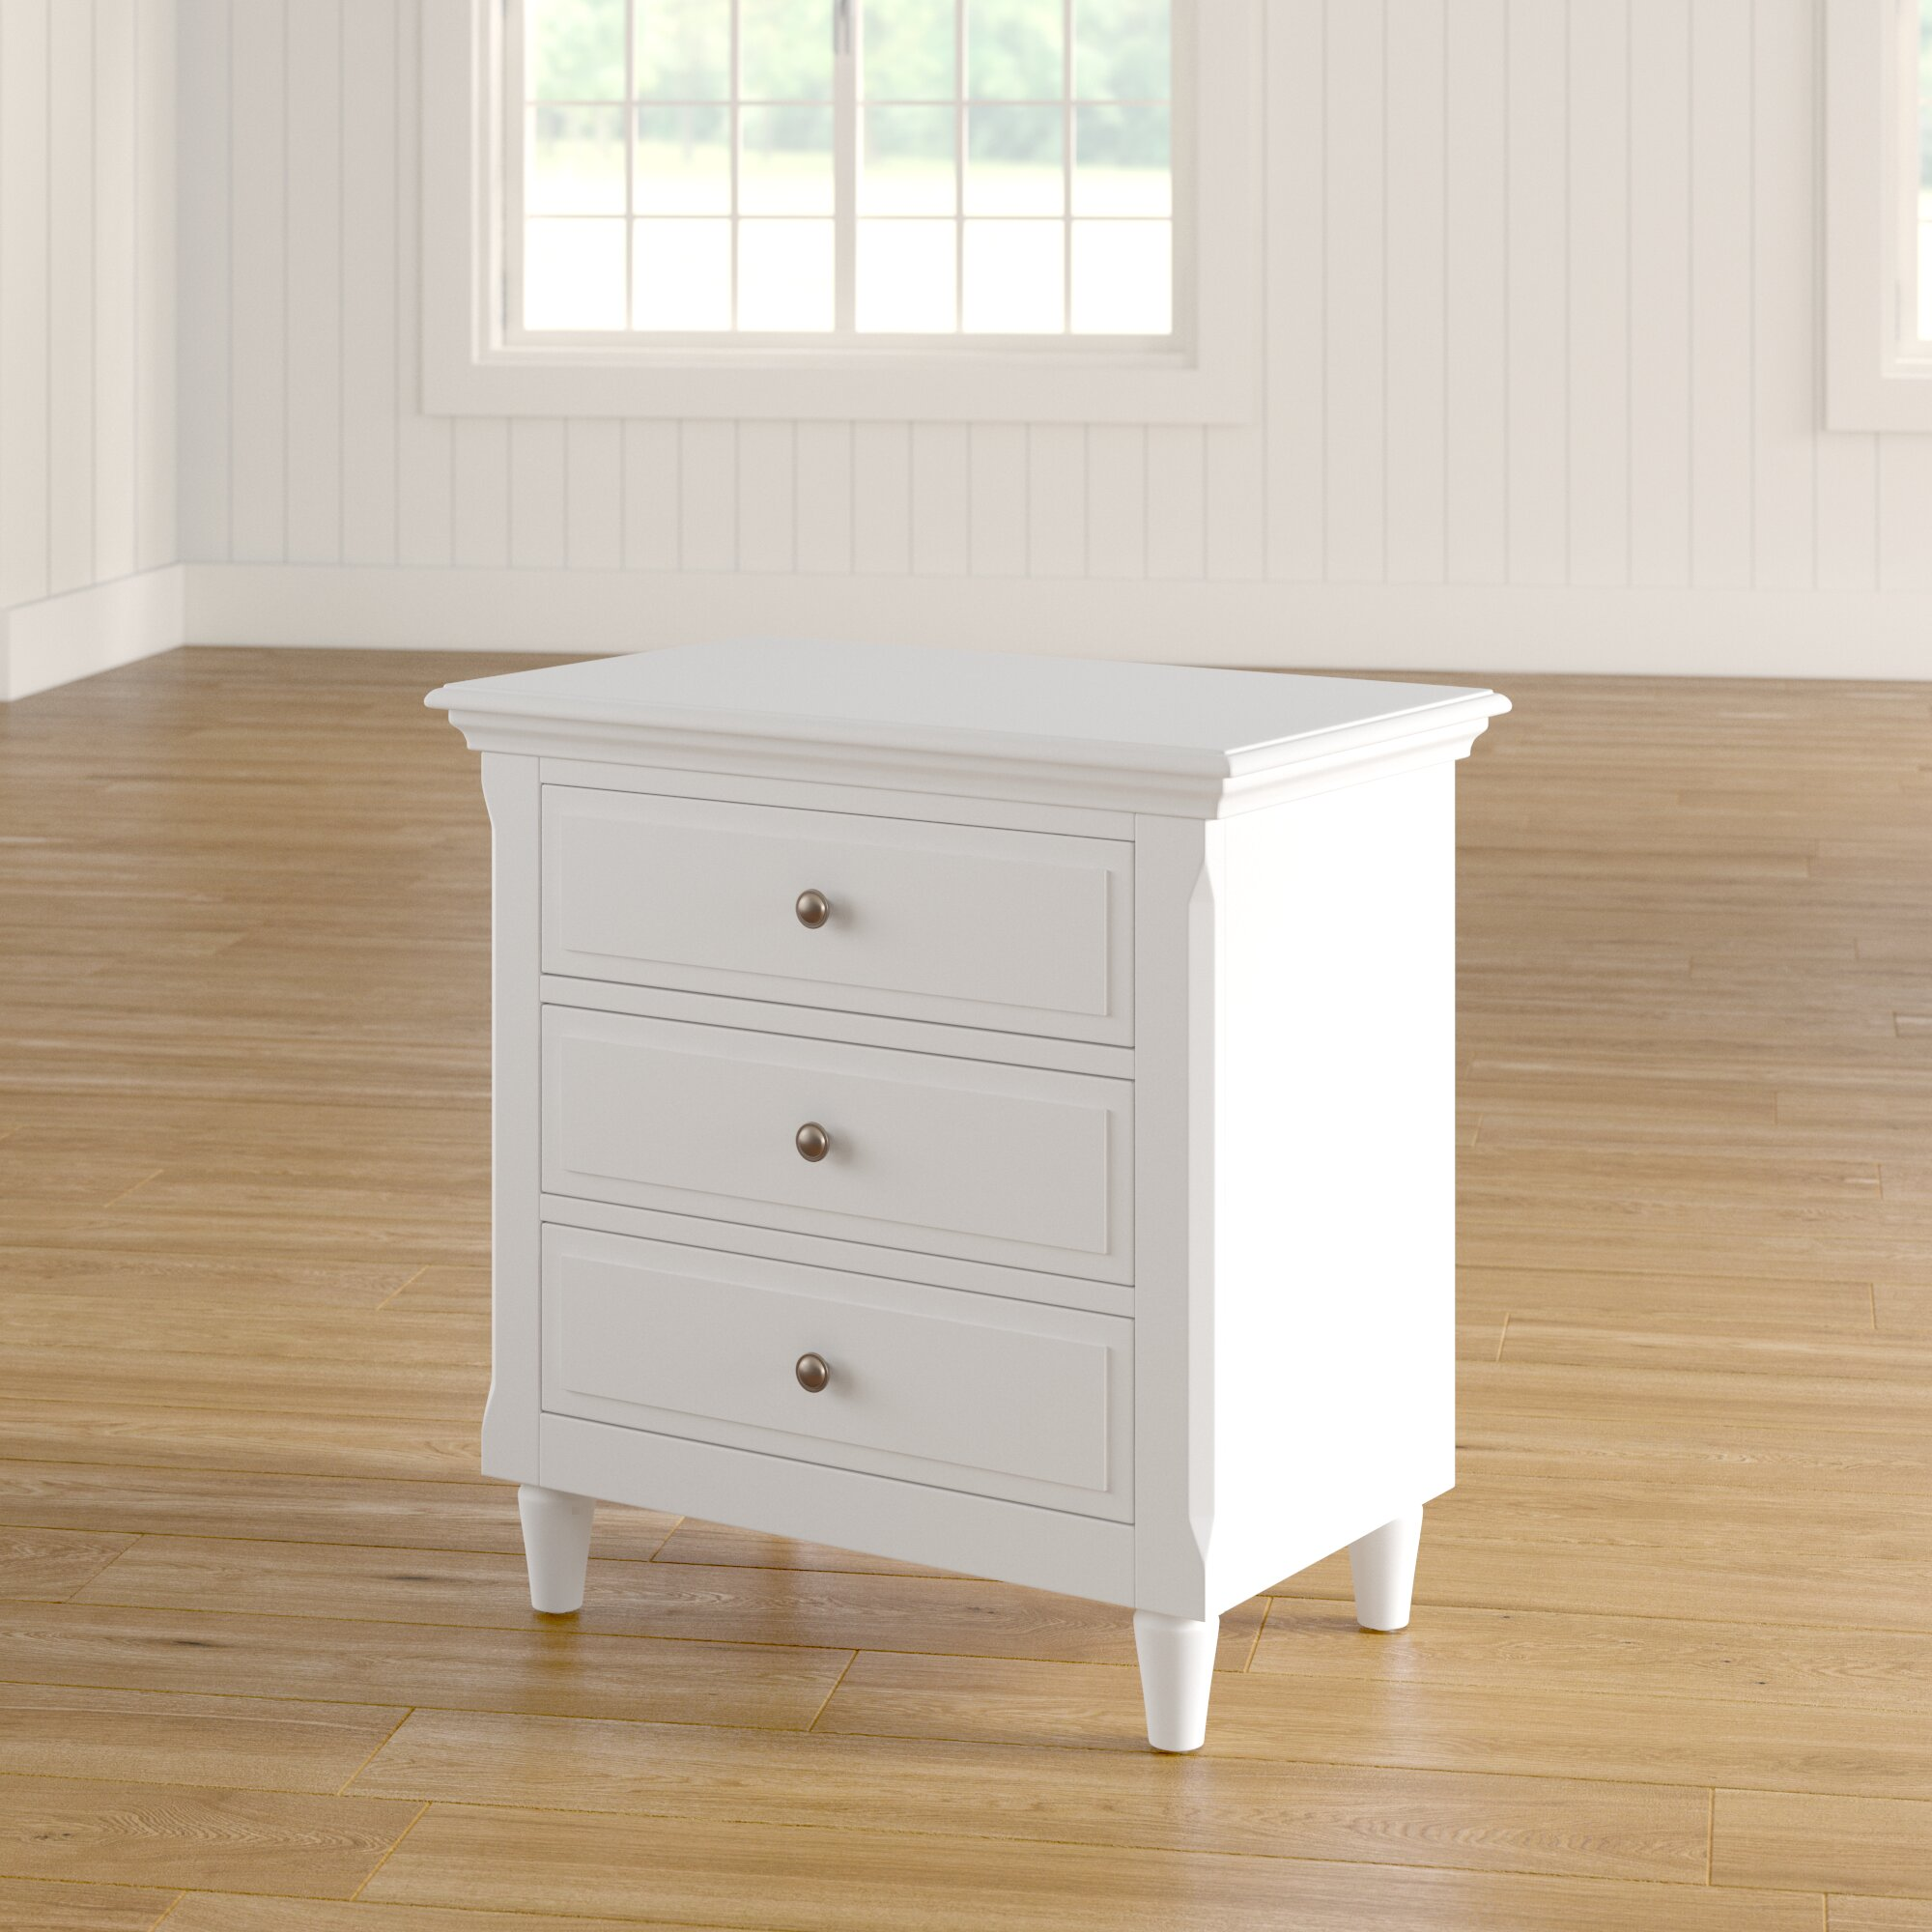 Three Posts Wickes 3 Drawer Nightstand Reviews Wayfair